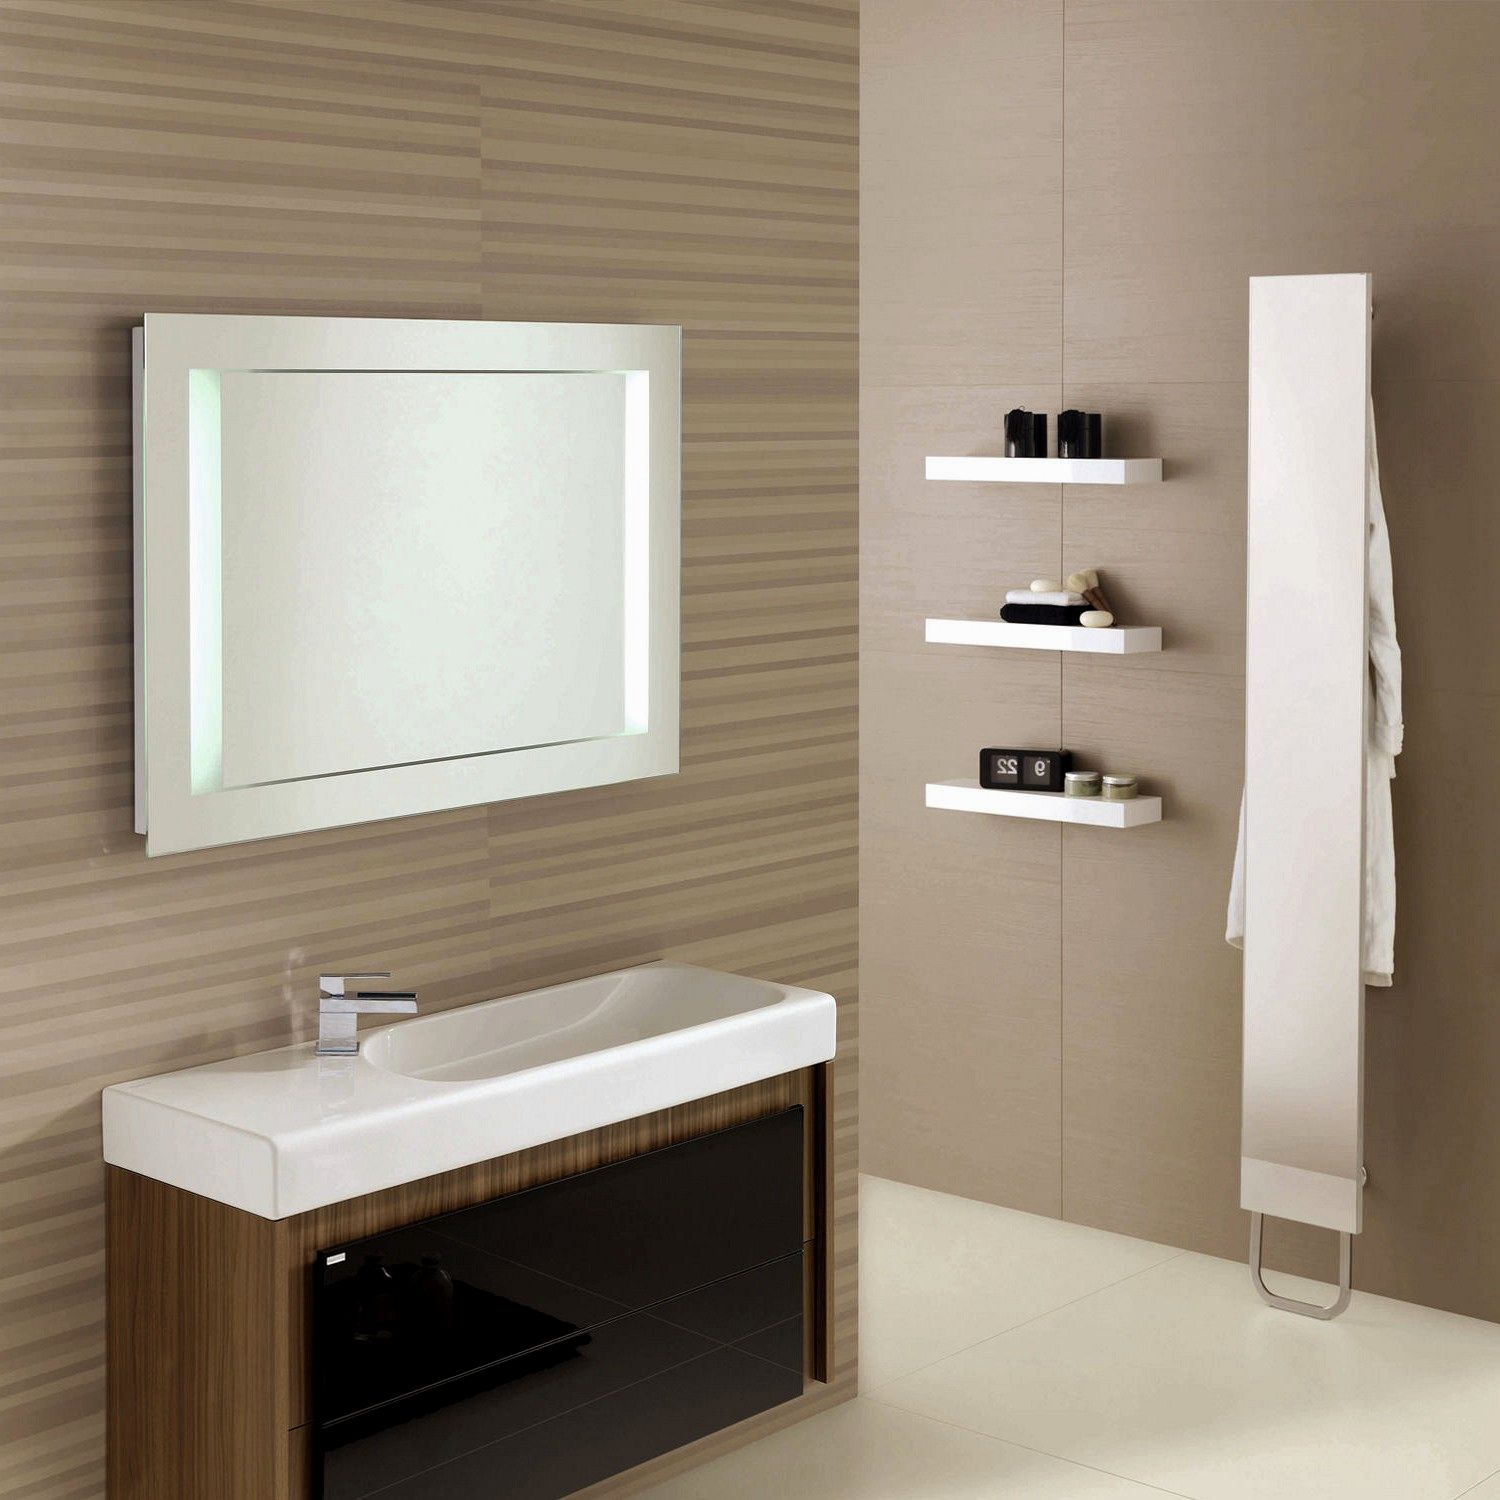 incredible bathroom mirror frames collection-Amazing Bathroom Mirror Frames Ideas